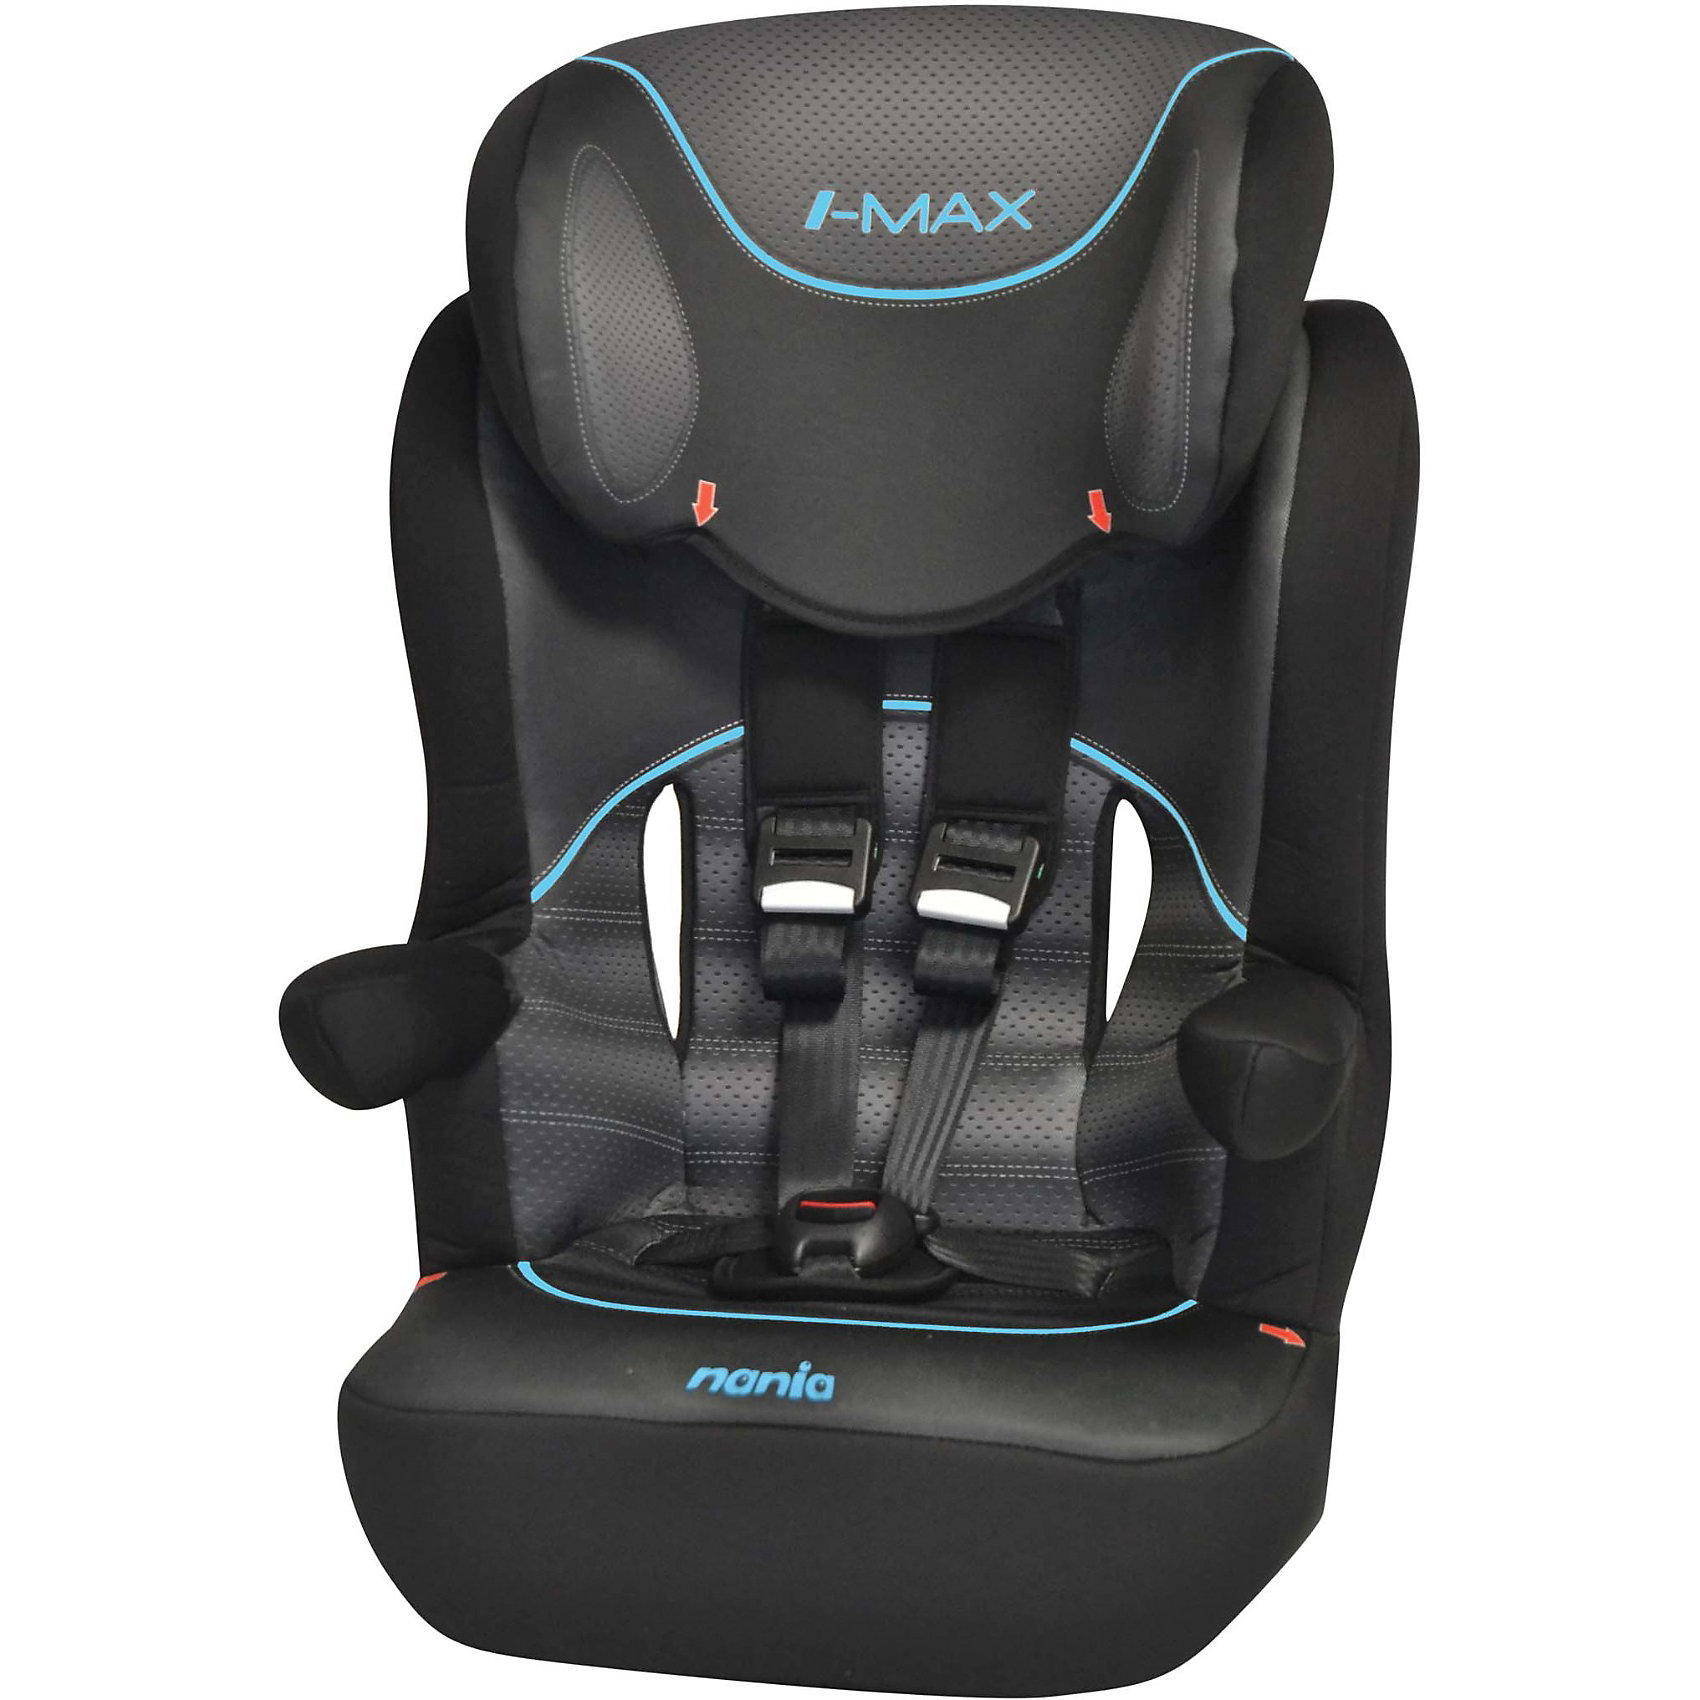 ���������� Imax SP, 9-36 ��., Nania, graphic i-tech